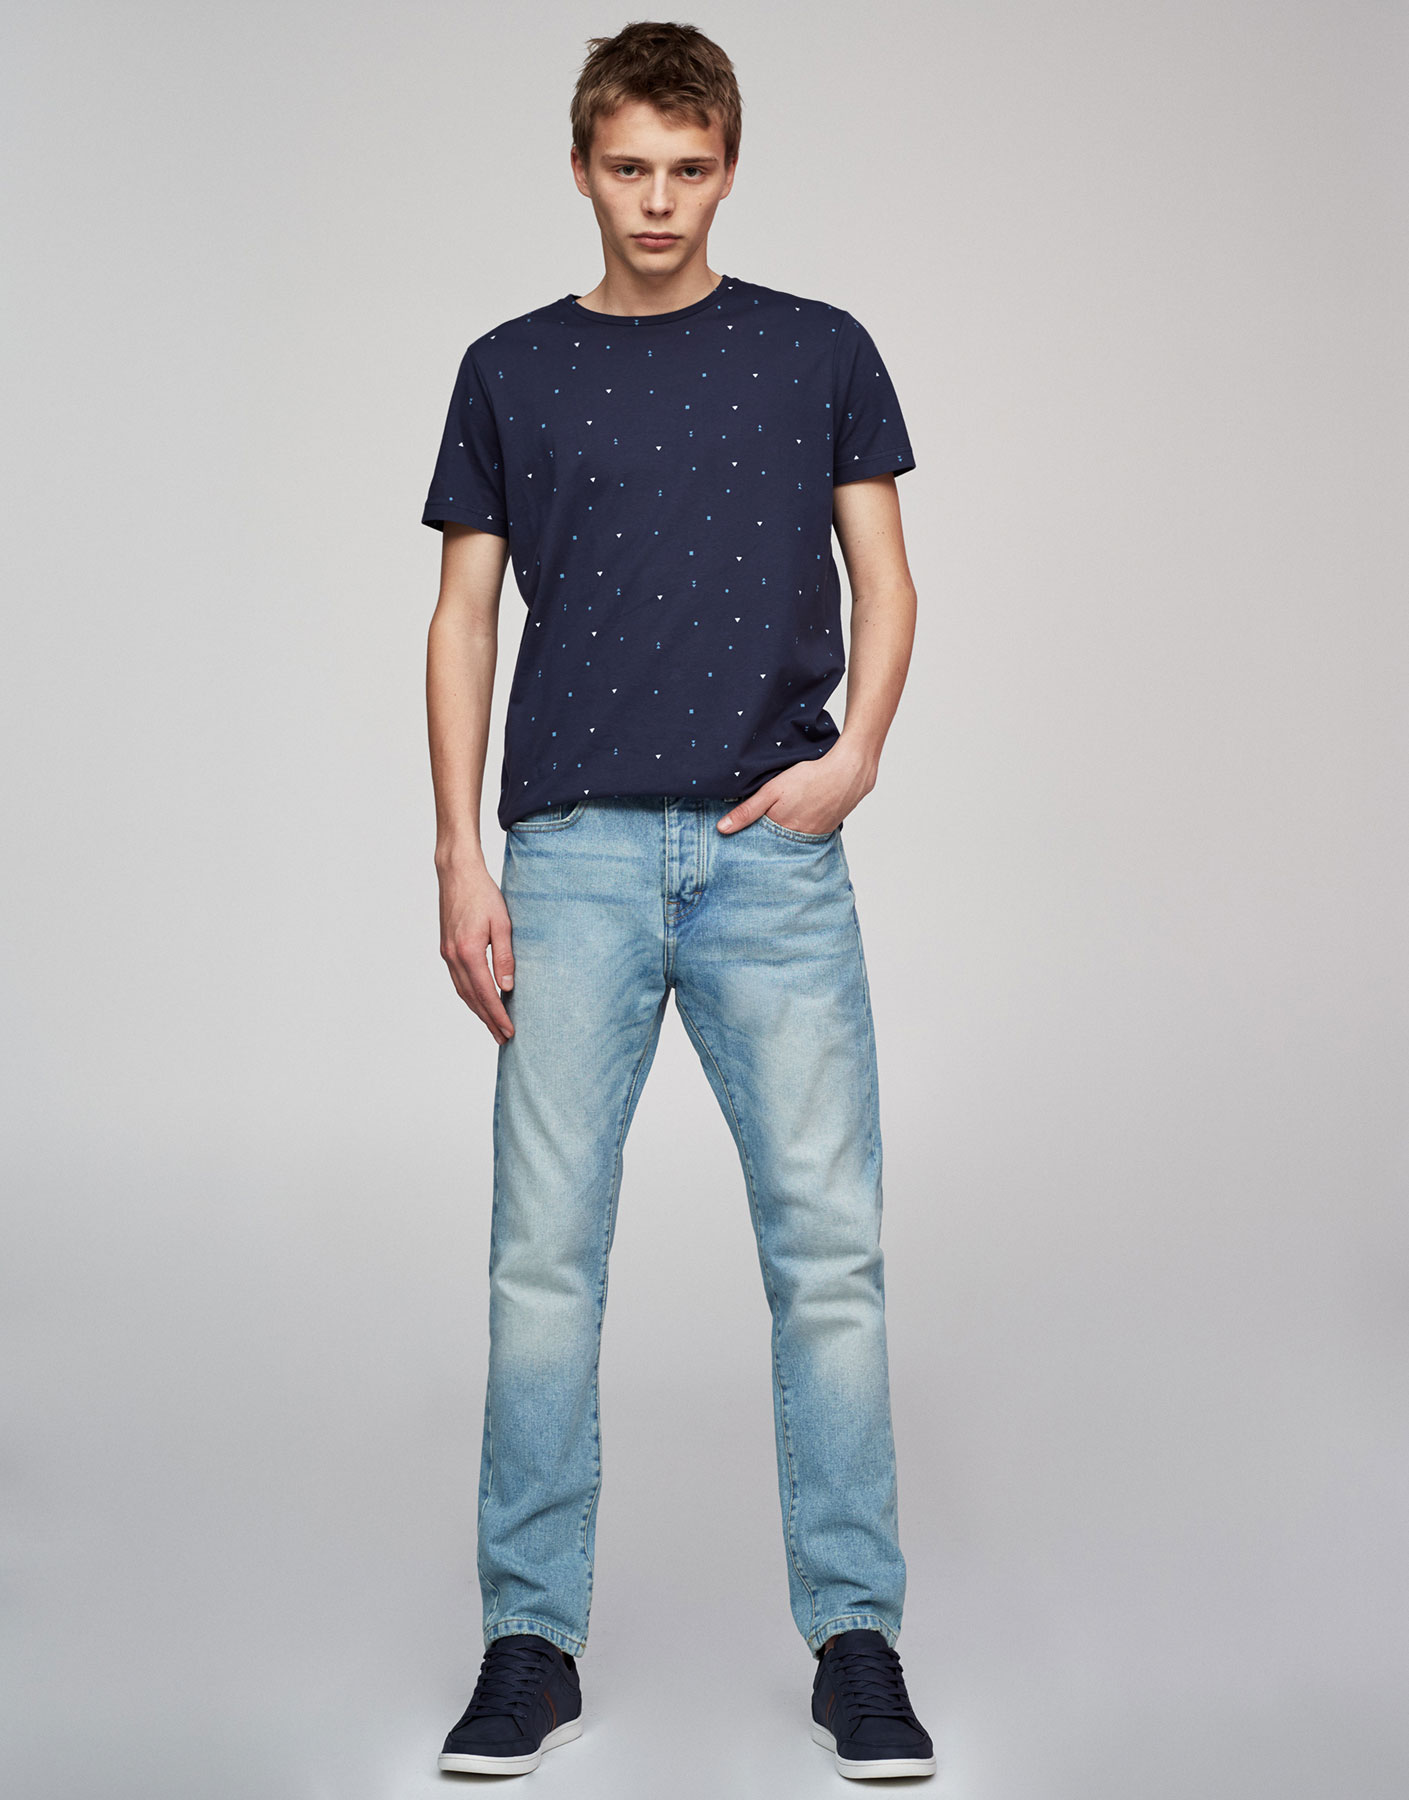 Blue regular fit jeans